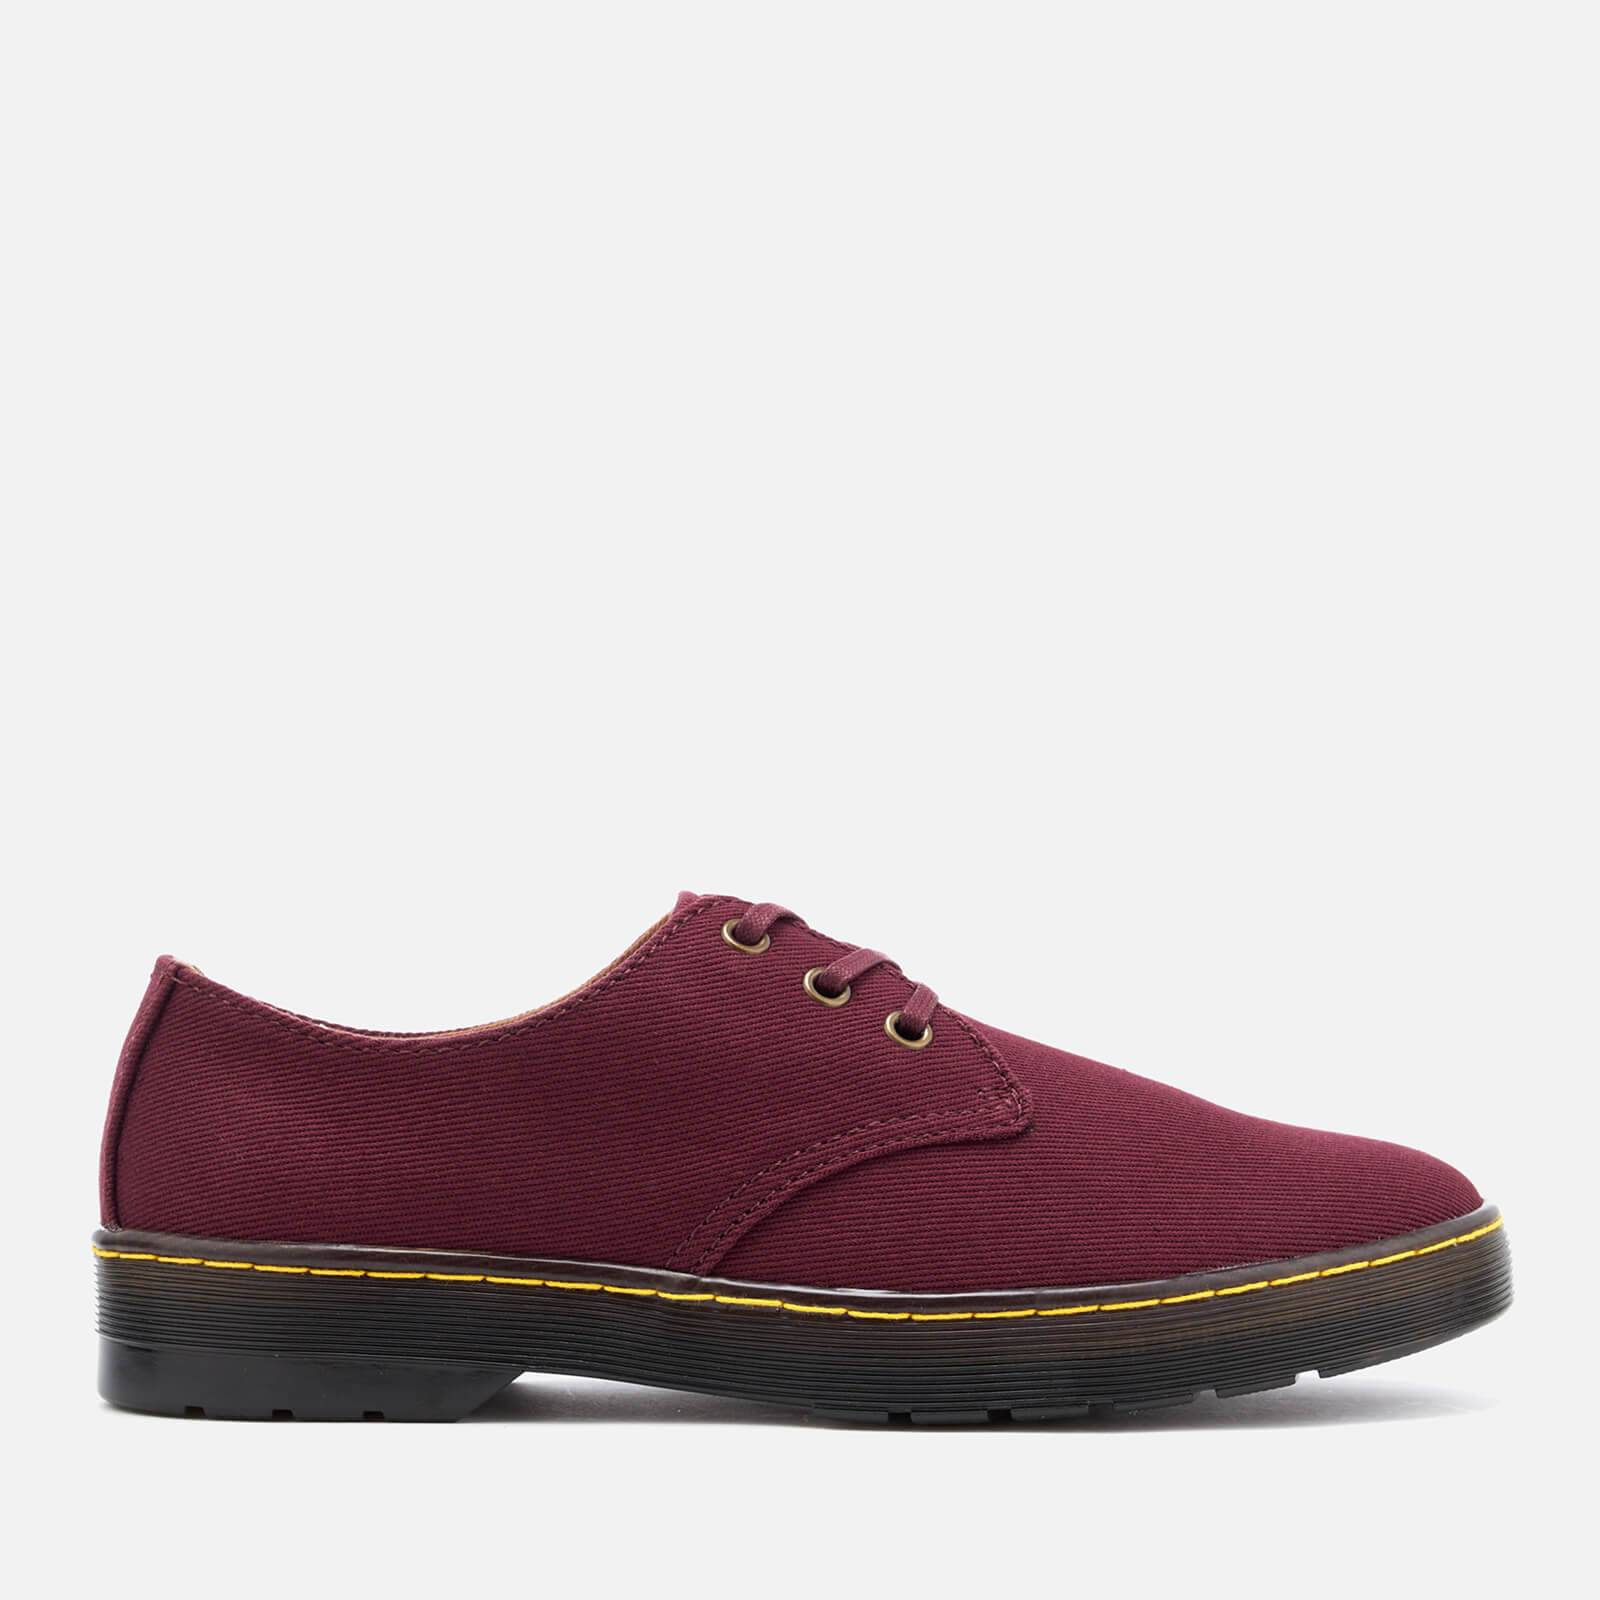 Dr. Martens Men's Delray Overdyed Twill Canvas Lace Shoes - Oxblood - UK 6.5 - Burgundy